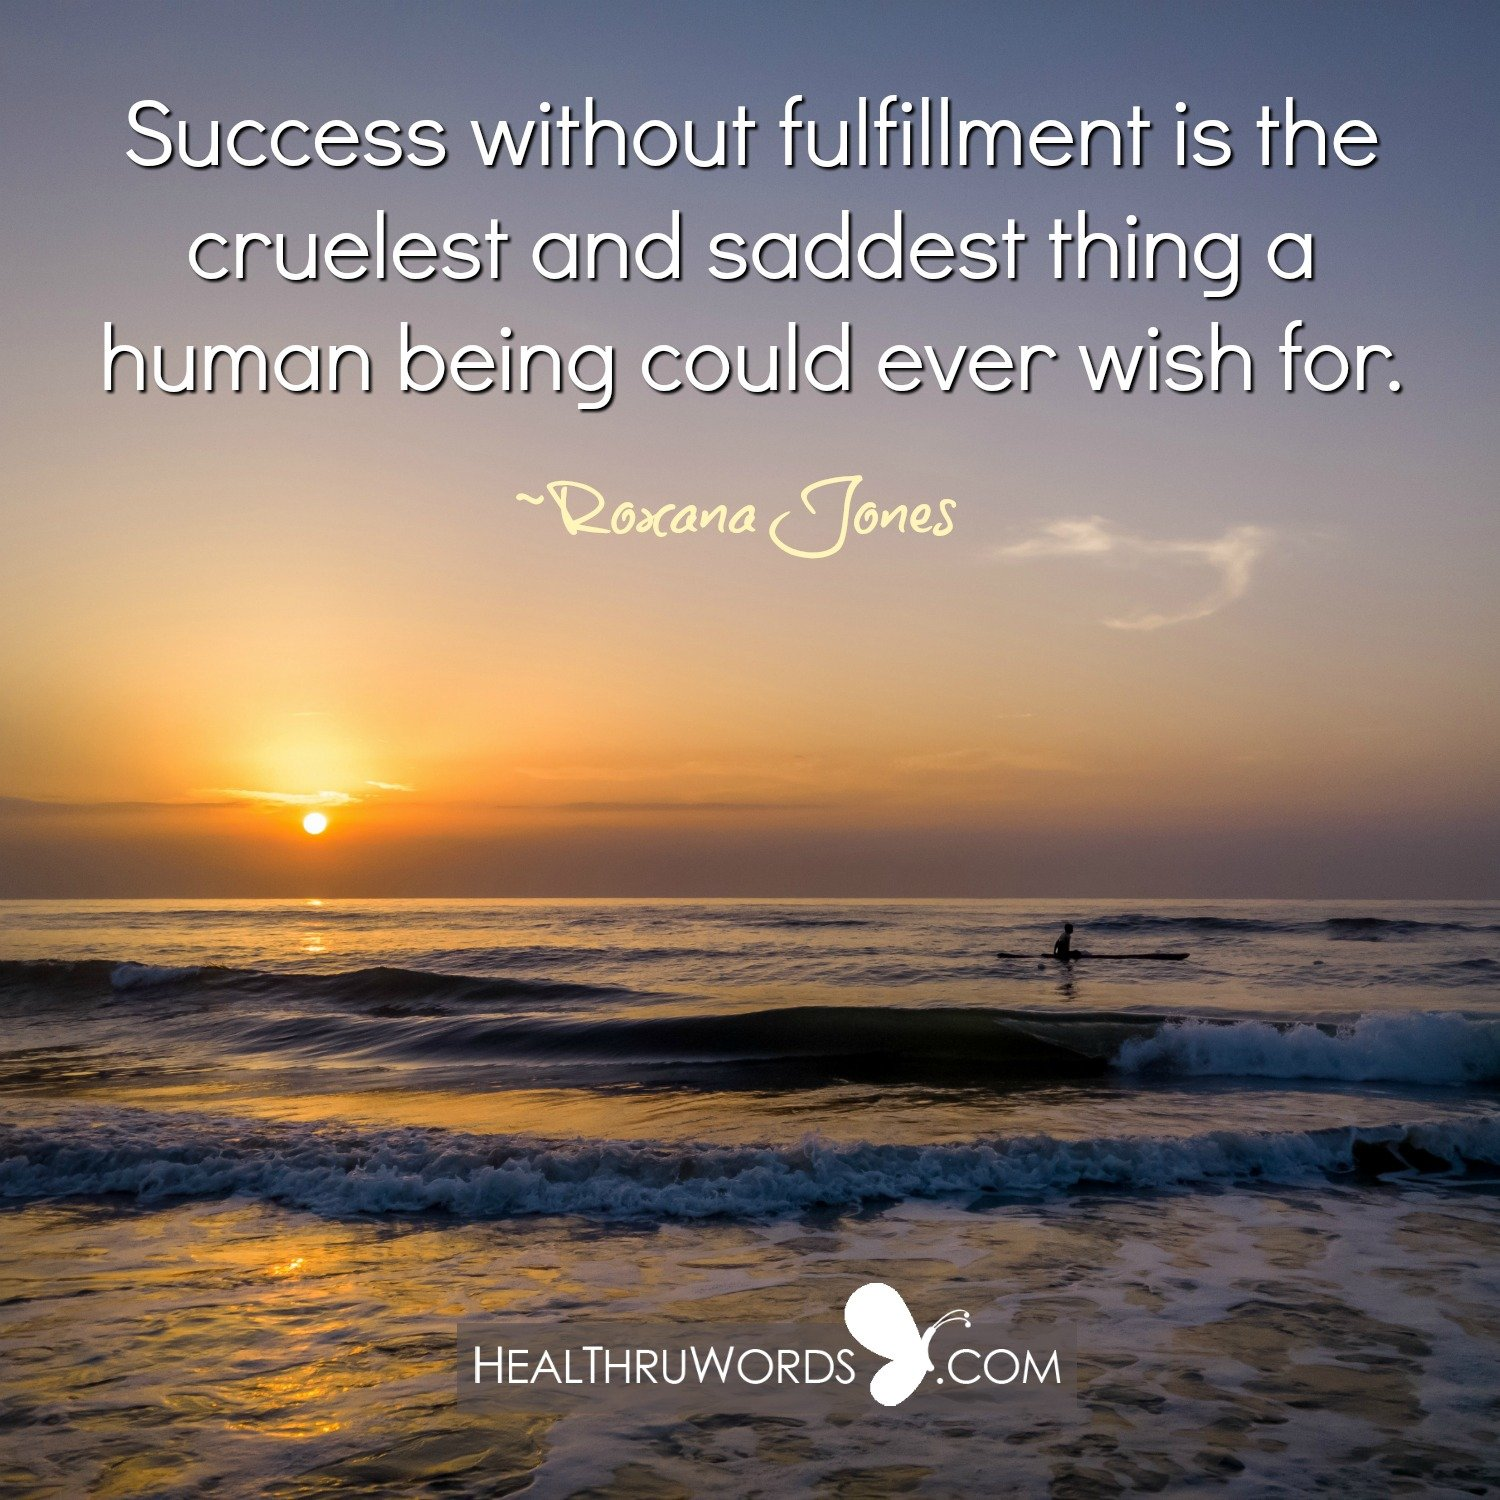 Inspirational Image: Fulfillment over Success